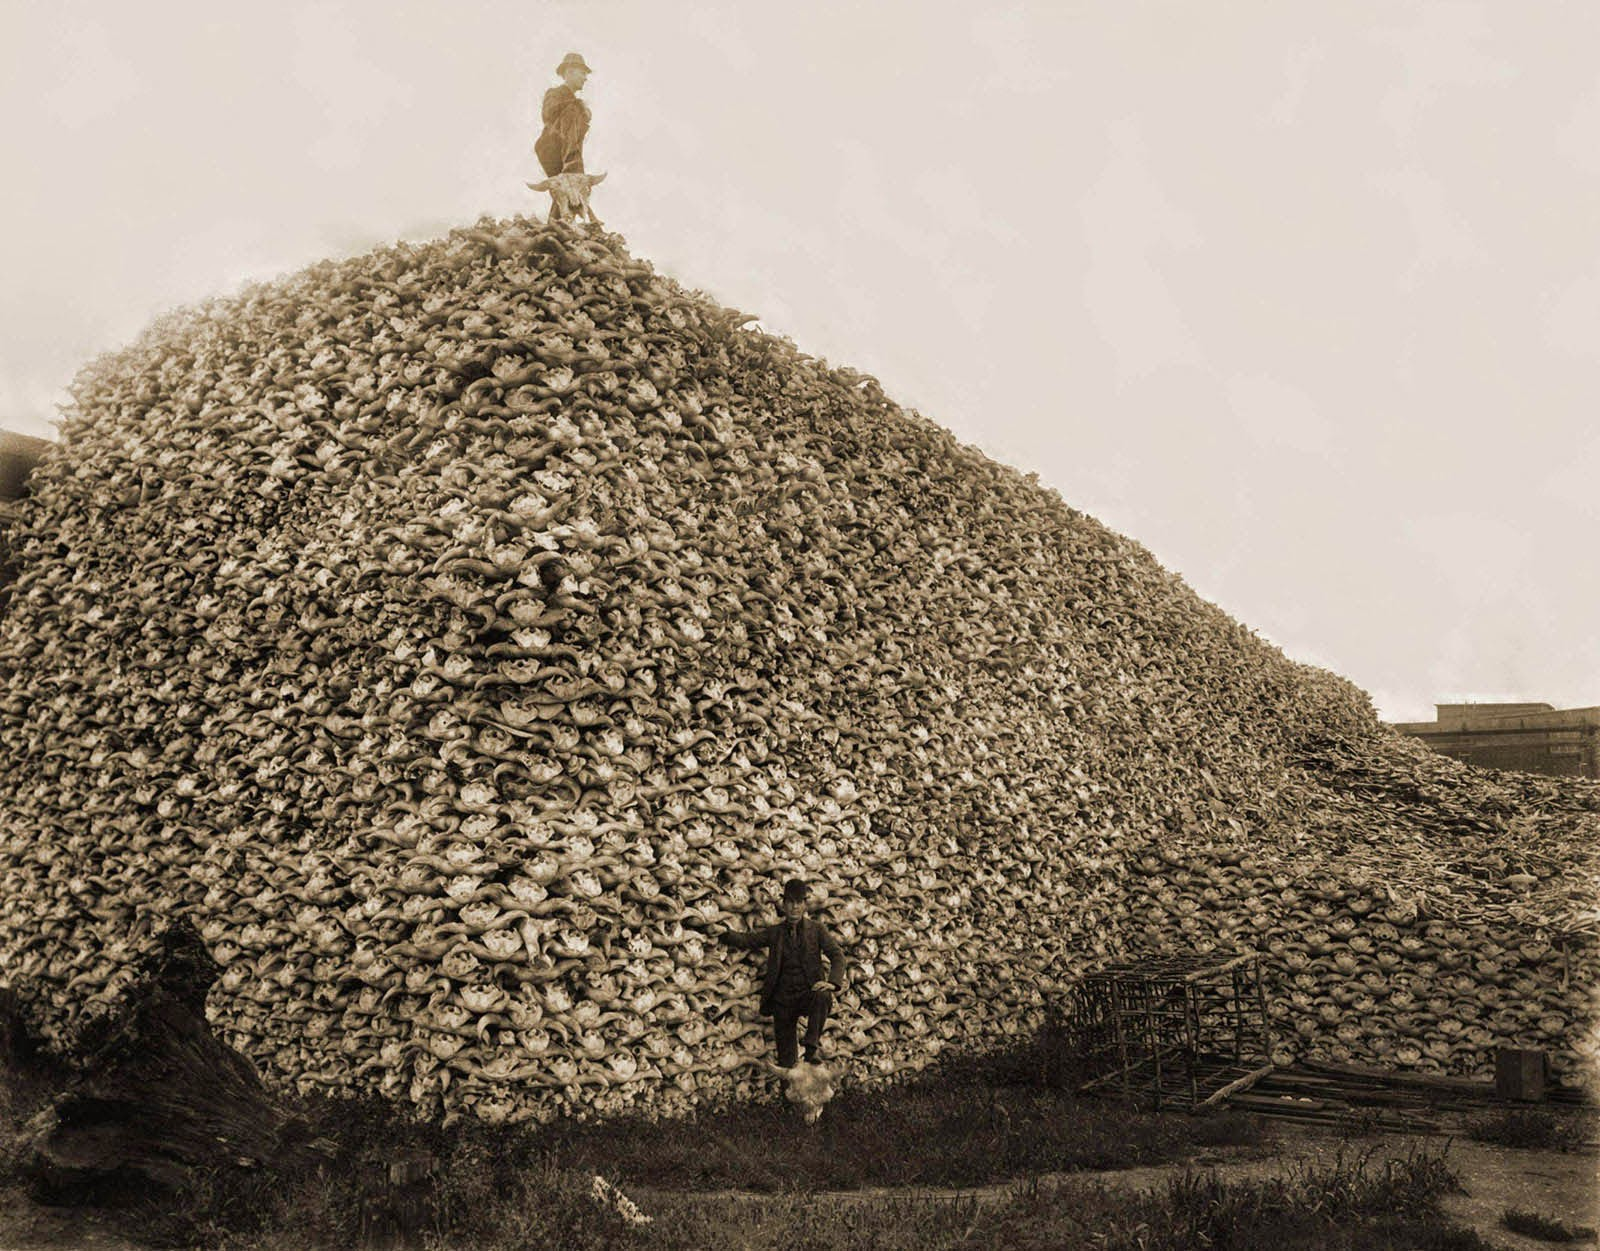 https://1.bp.blogspot.com/-sSxThL7UV_8/U6hvuOqkw2I/AAAAAAAAJfo/ZkXWZdszdZ8/s1600/Bison+skulls+pile+to+be+used+for+fertilizer+,+1870.jpg